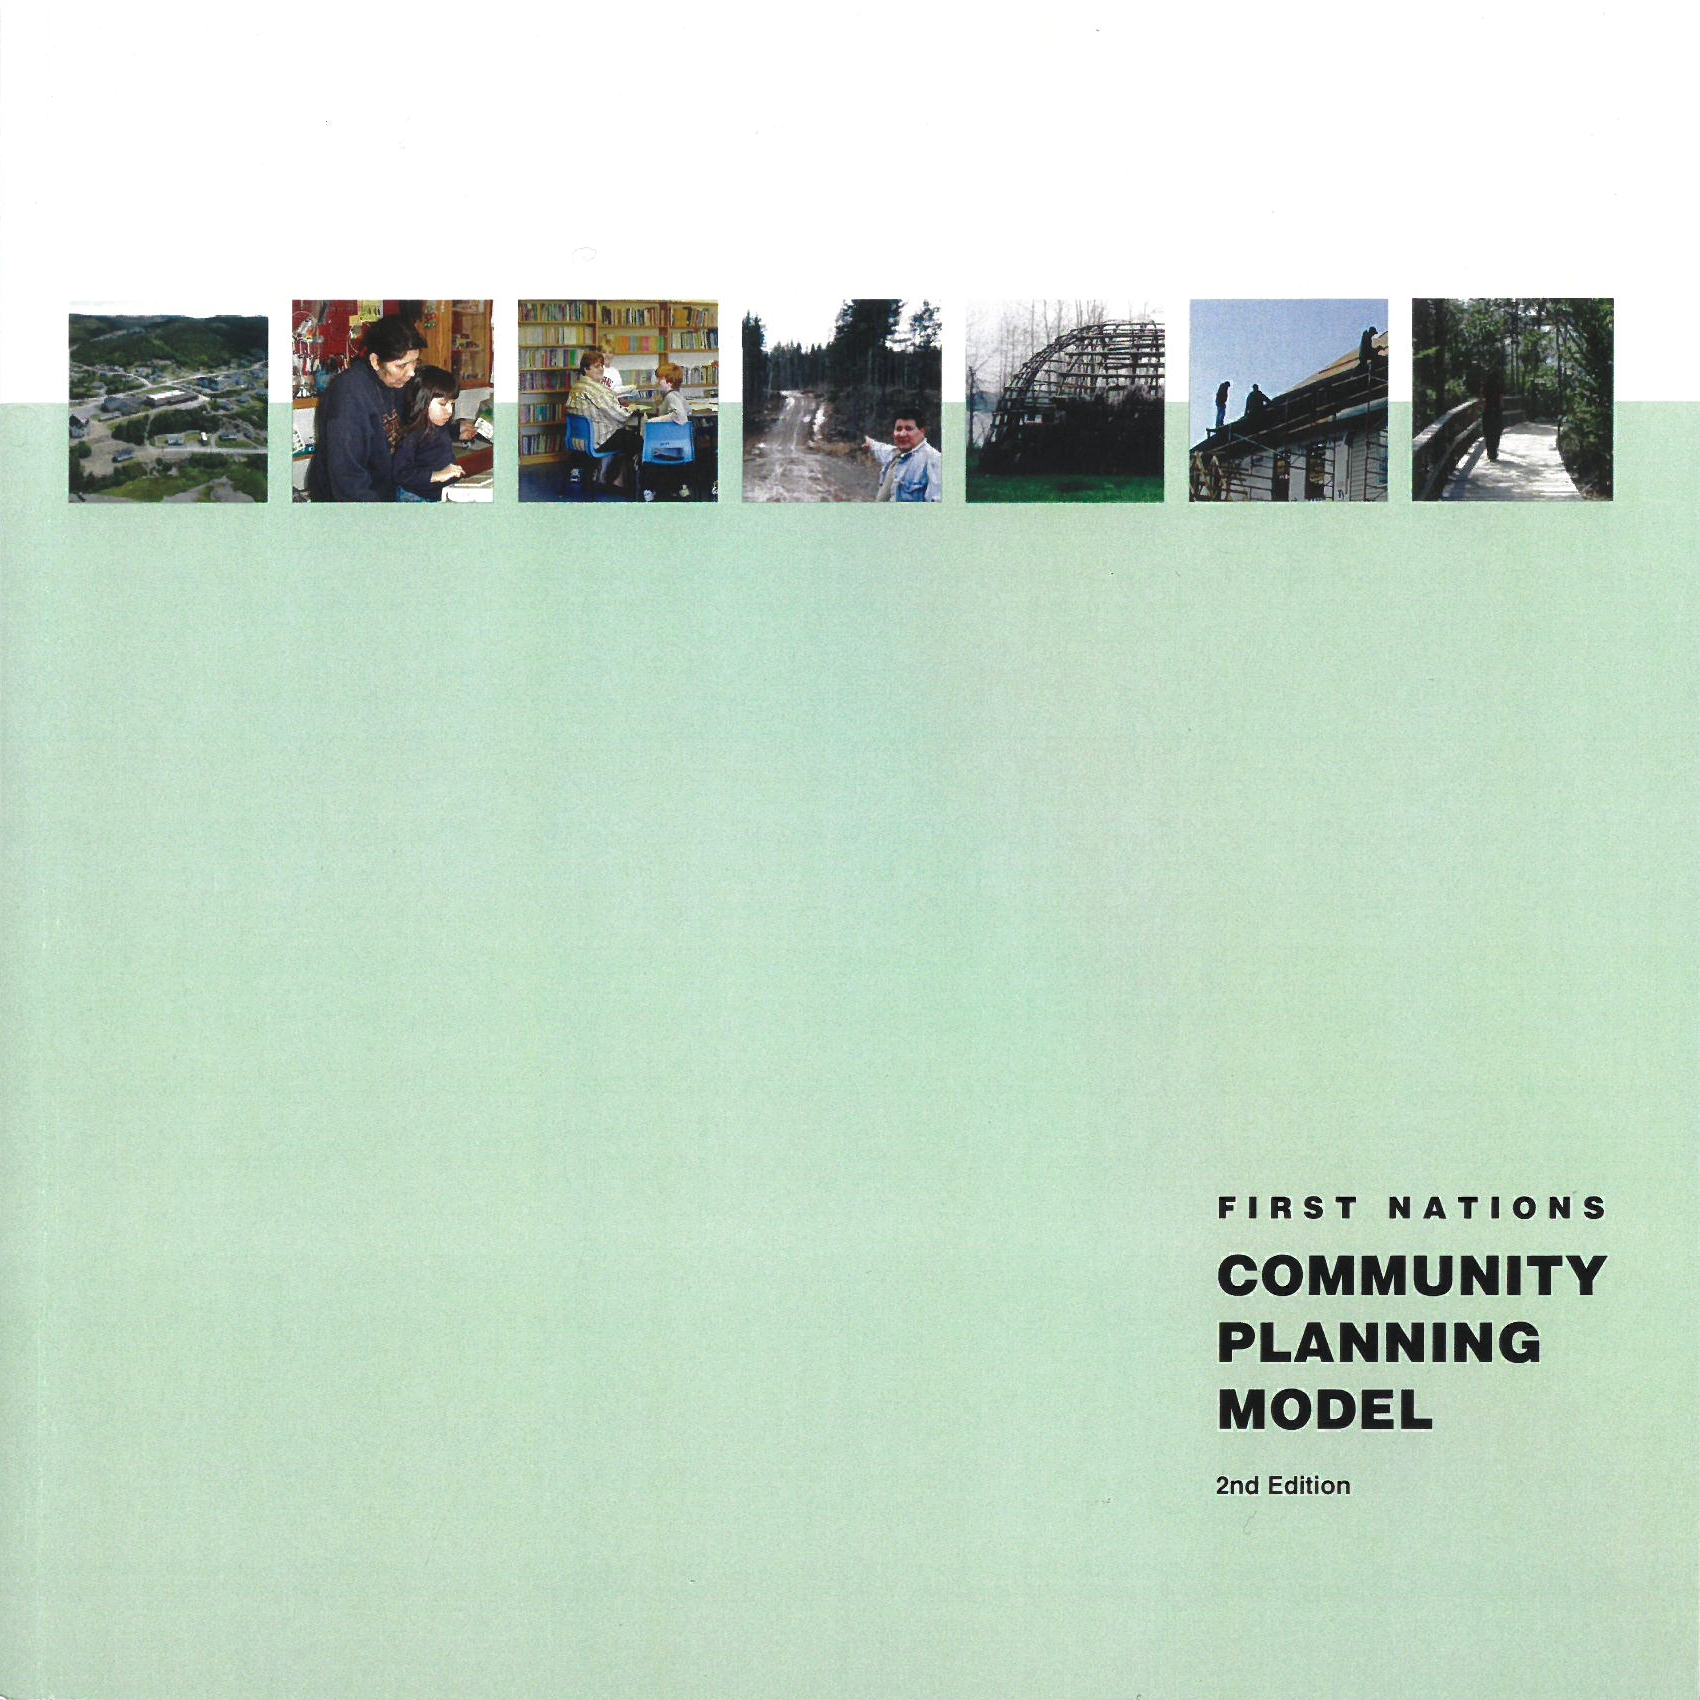 First Nations Community Planning Model